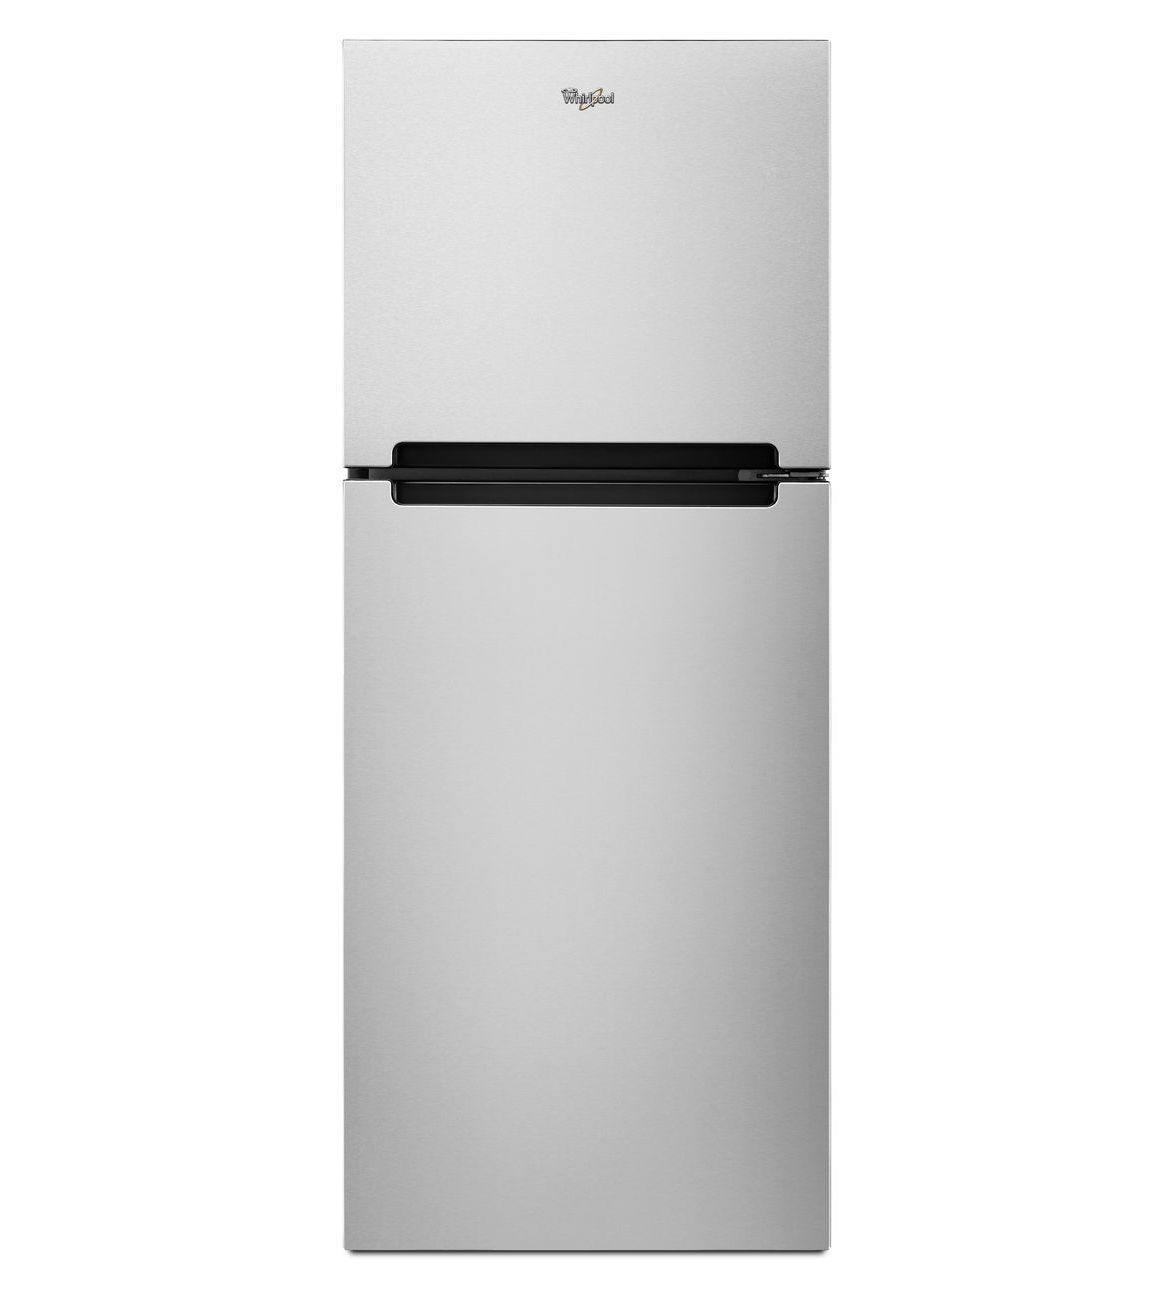 Whirlpool Inches Wide Top Freezer Refrigerator Cu Ft